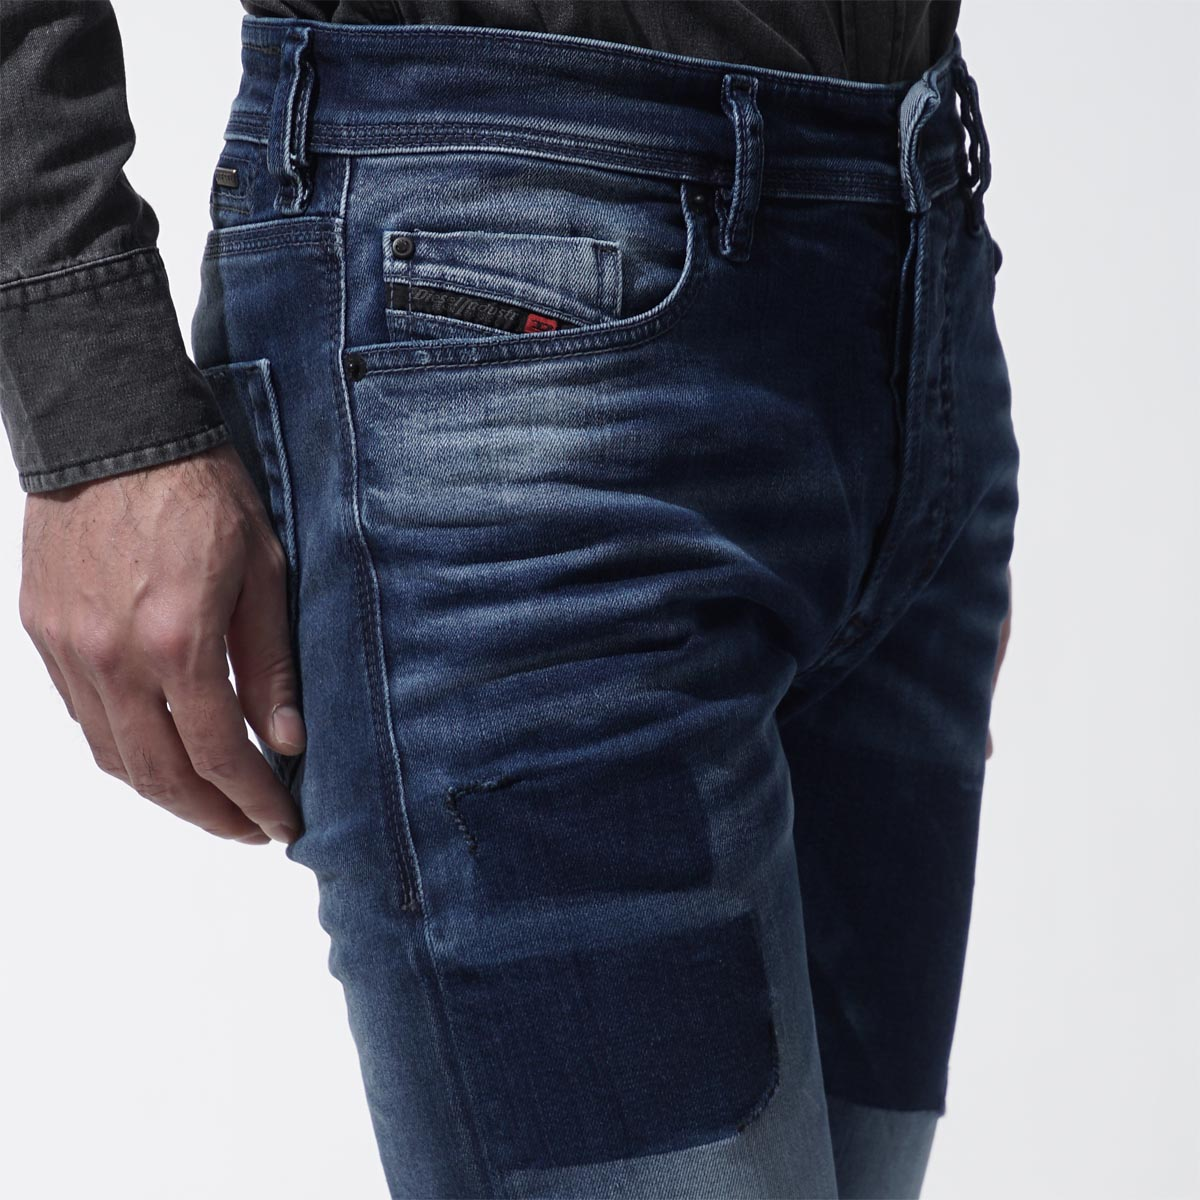 Diesel DIESEL button fried food jeans DIESEL DNA TEPPHAR SLIM CARROT indigo blue blue system tepphar 00ckri 084bw men